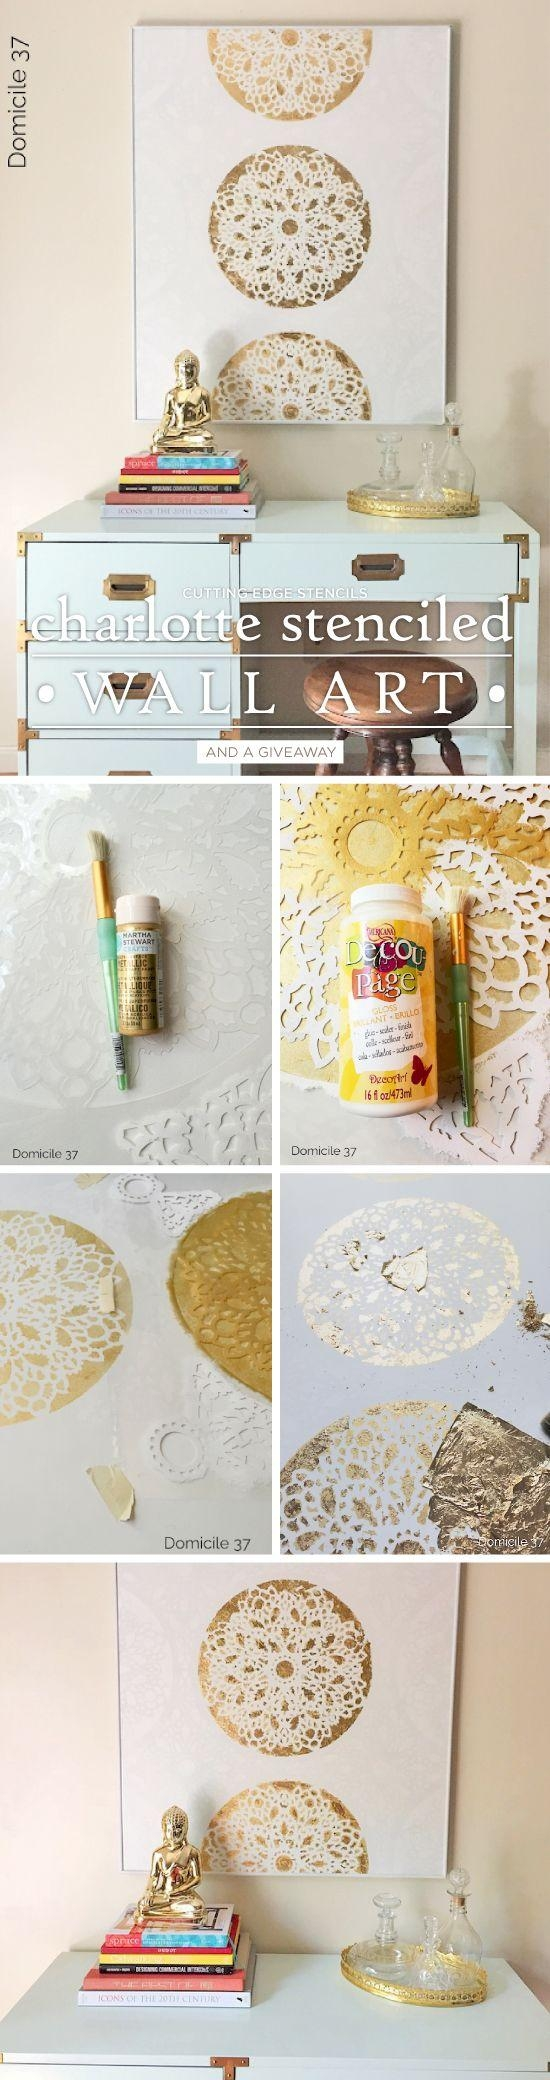 Best 10+ Diy Wall Art Ideas On Pinterest | Diy Art, Diy Wall Decor Pertaining To Pinterest Diy Wall Art (View 4 of 20)